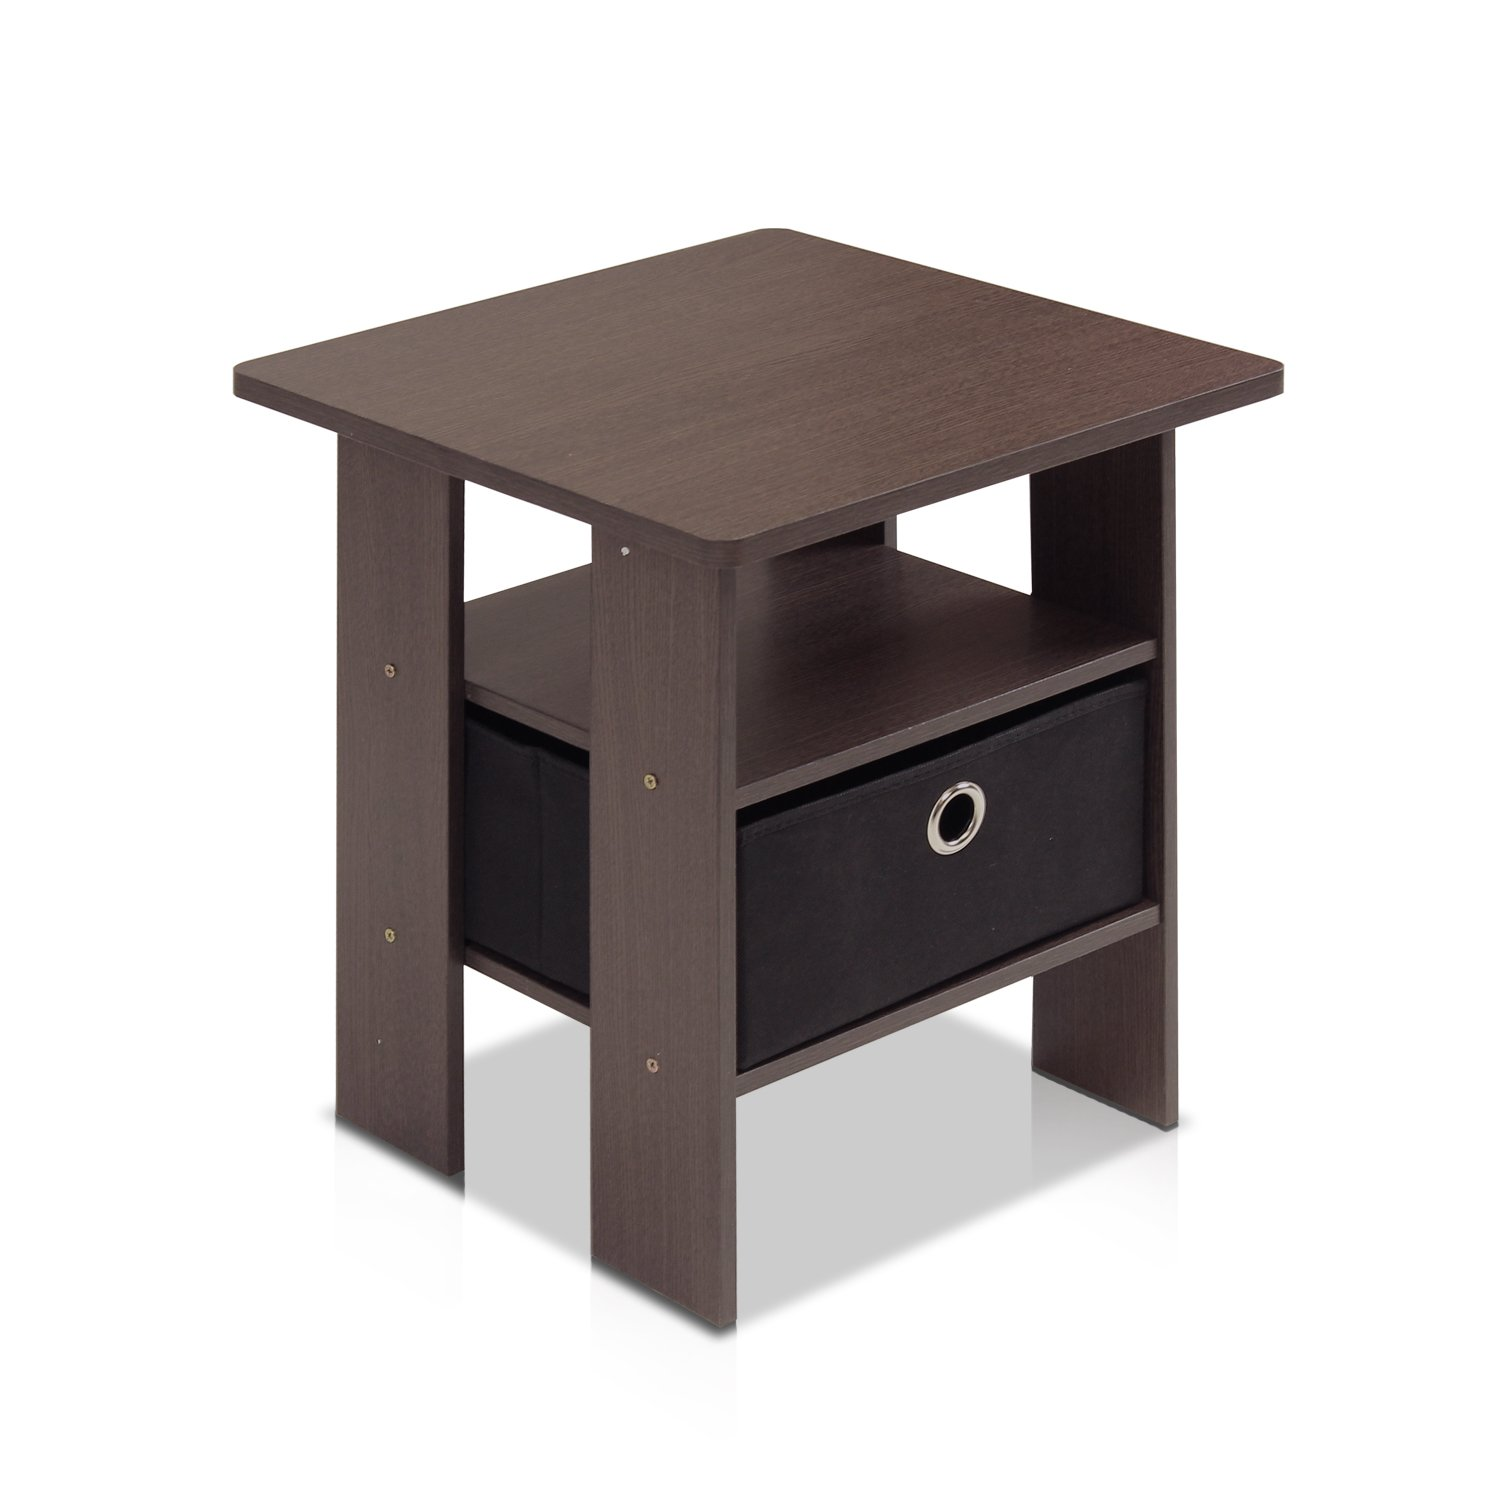 Furinno 11157DBR/BK End Table Bedroom Night Stand W/Bin